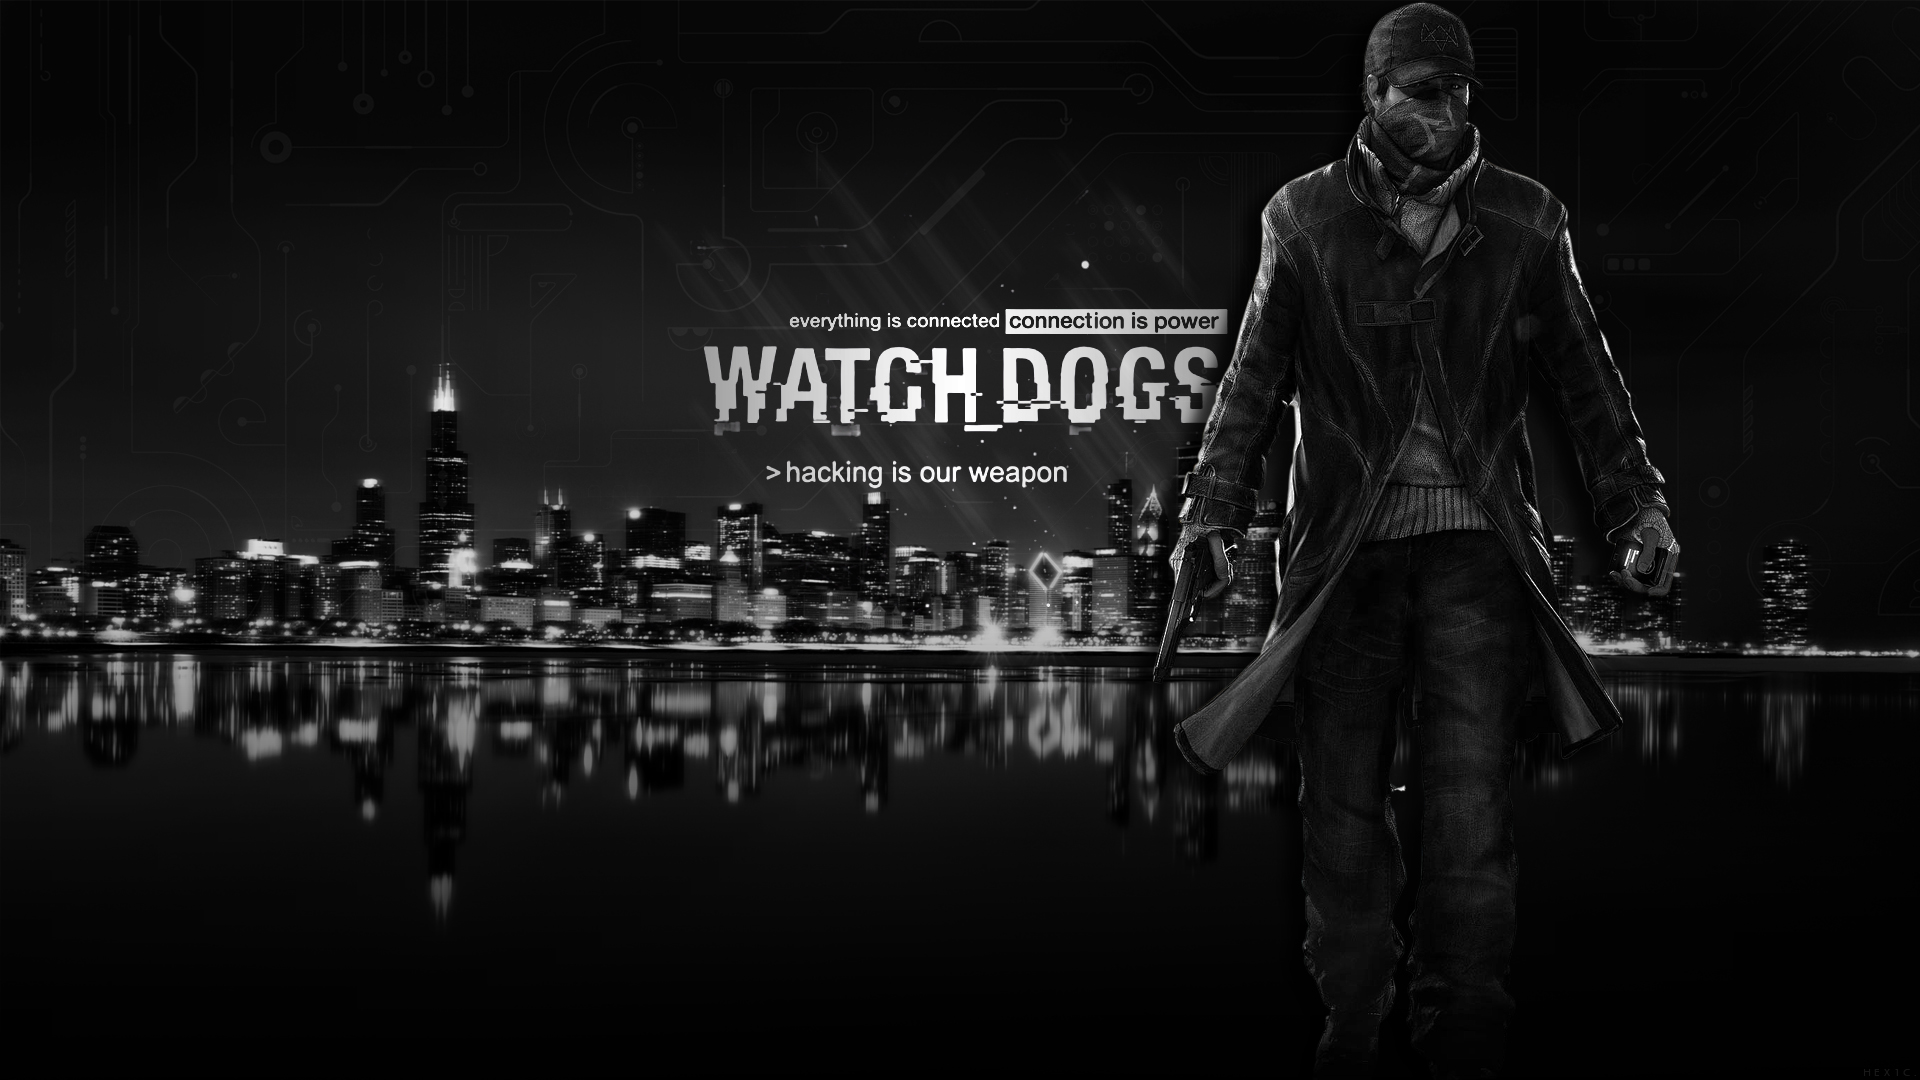 Watch Dogs 2 Wallpaper 1920x1080: Watch Dogs Wallpaper HD By Solidcell On DeviantArt